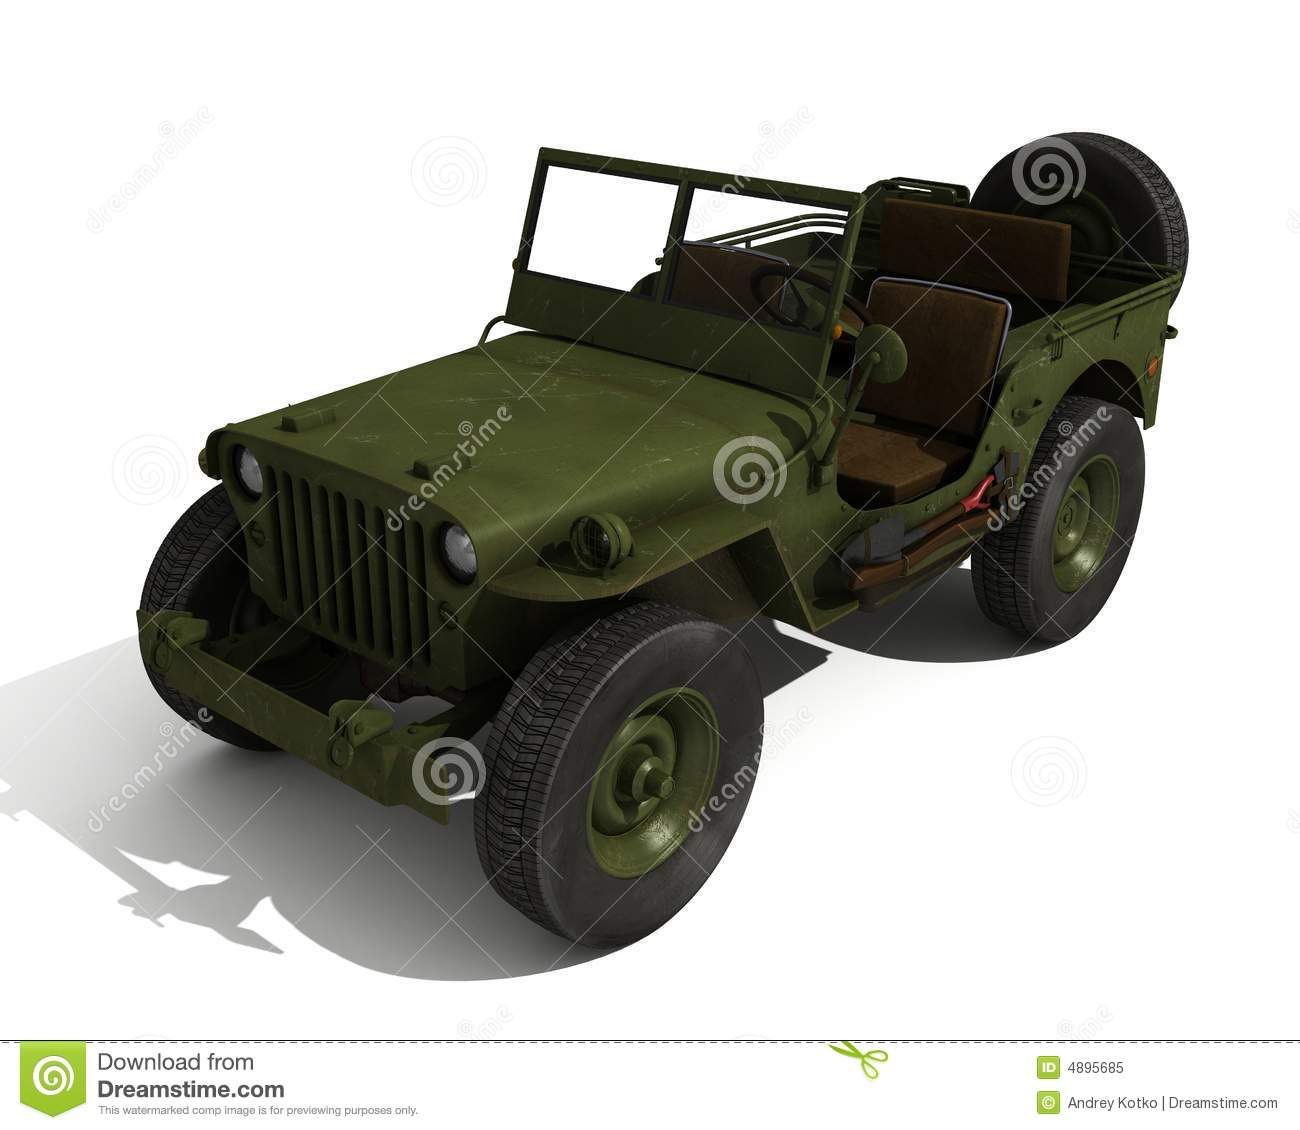 Indian police jeep clipart clip freeuse library Willys Jeep Stock Photos, Images, & Pictures - 280 Images clip freeuse library